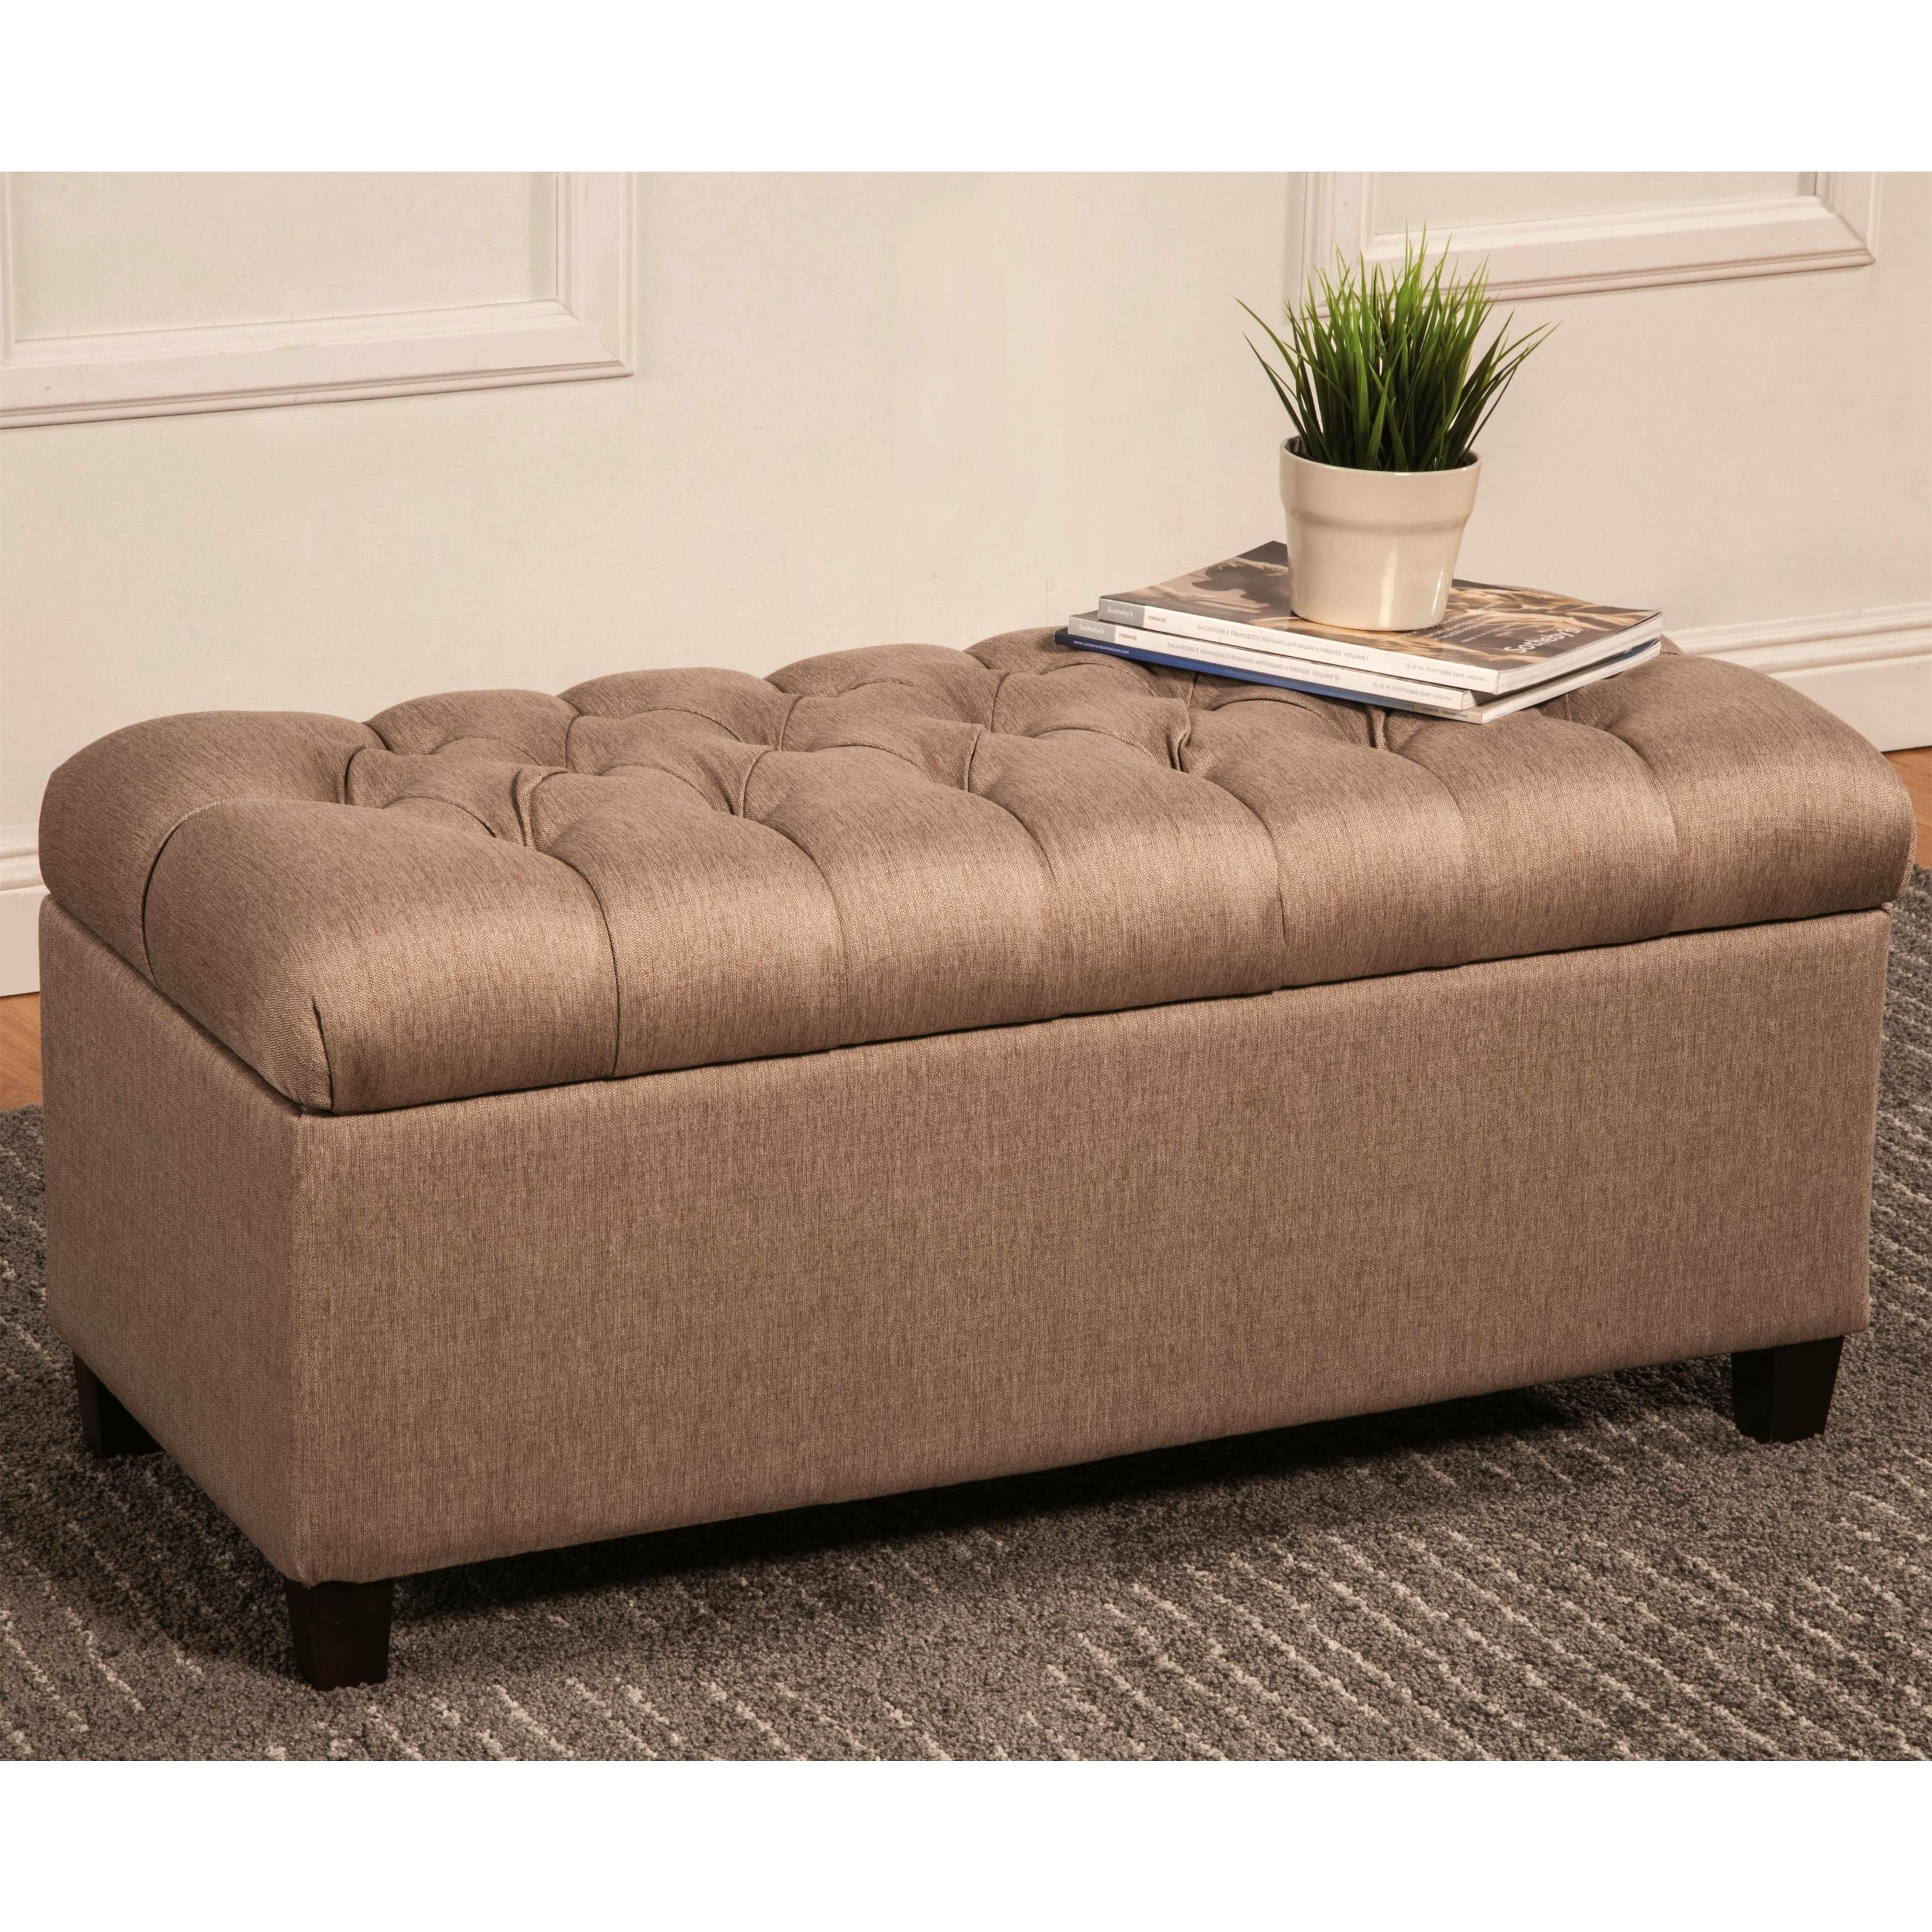 This transitional style multi function bench features a tufted this transitional style multi function bench features a tufted cushion top and storage space this may be used as an ottoman coffee table geotapseo Image collections